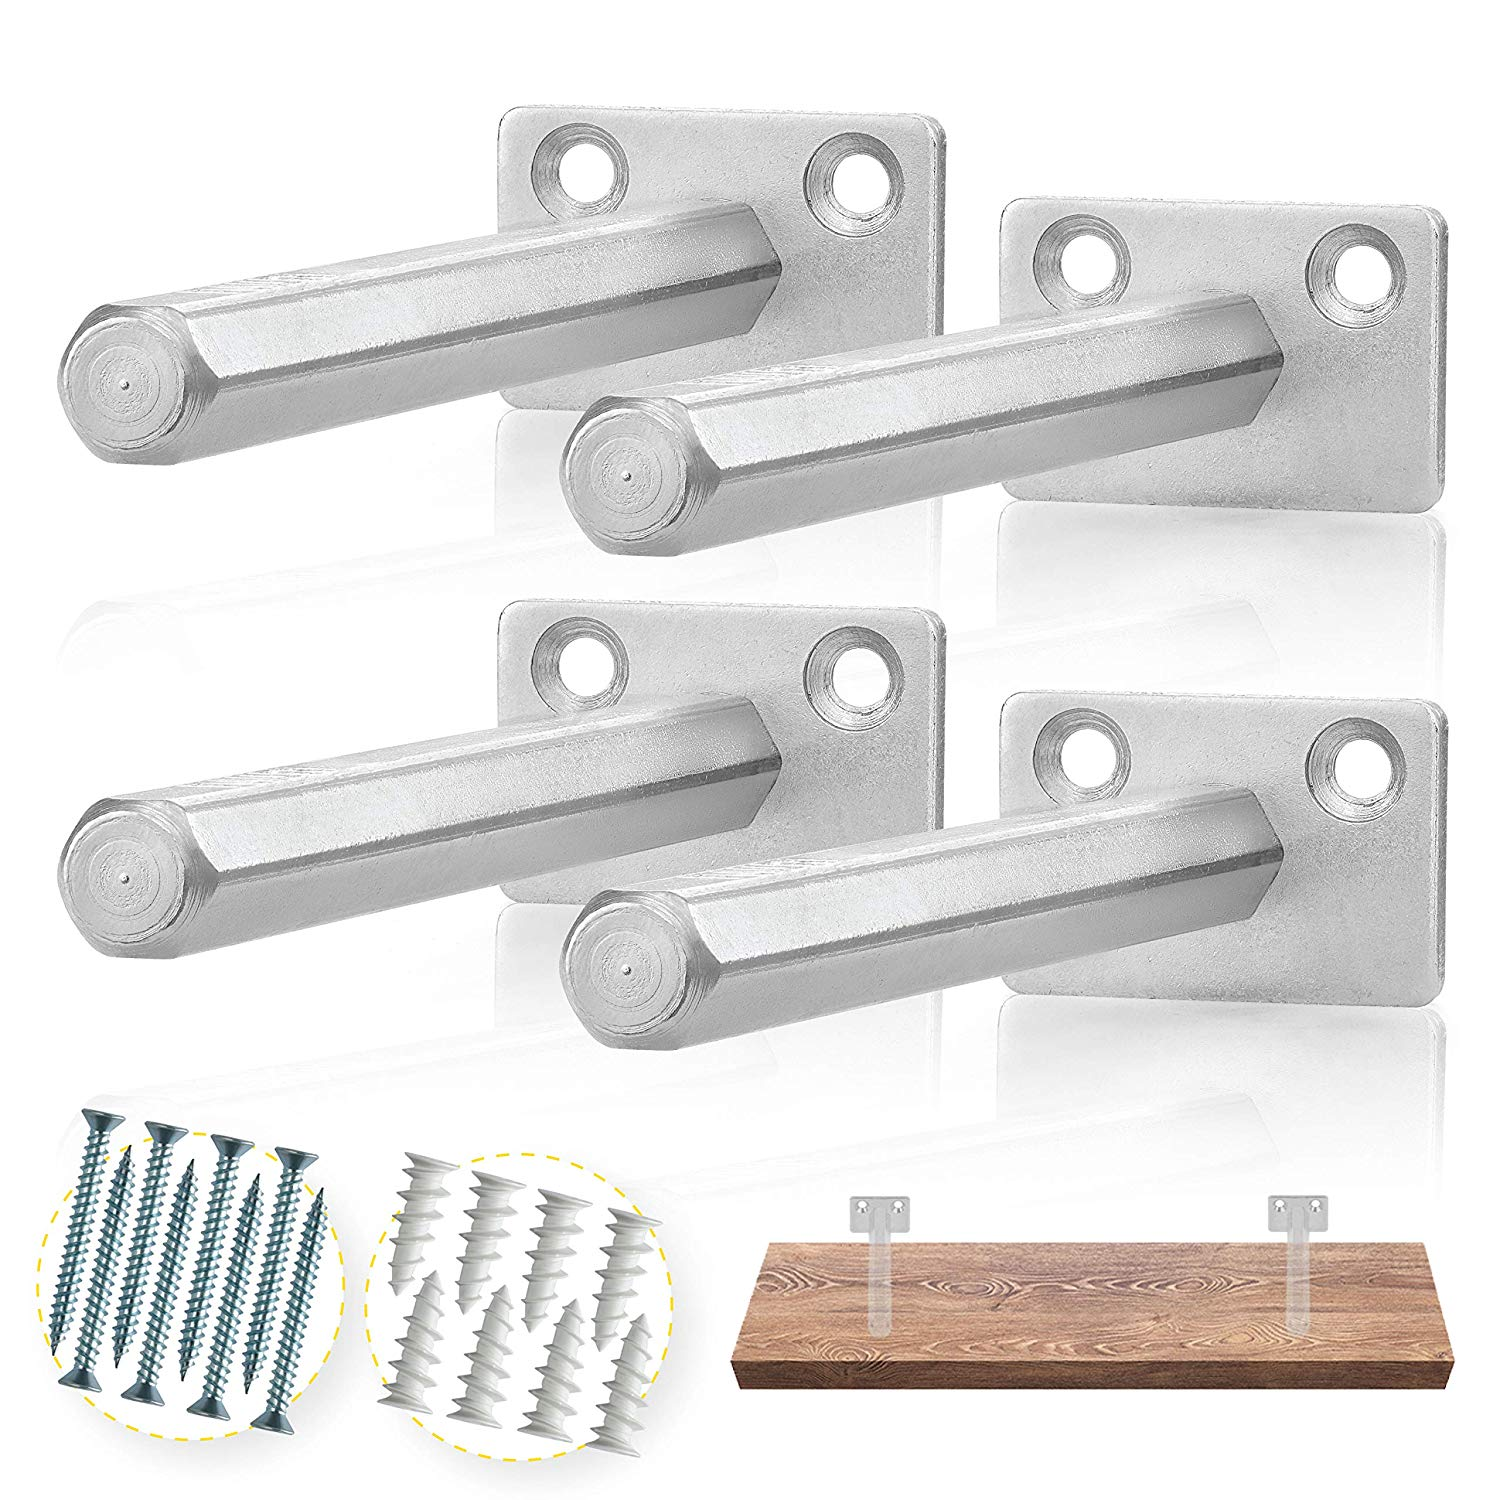 batoda floating shelf bracket pcs galvanized steel xuzl fixing blind supports hidden brackets for wood shelves concealed support closet shoe ideas ikea cube kallax bookcase